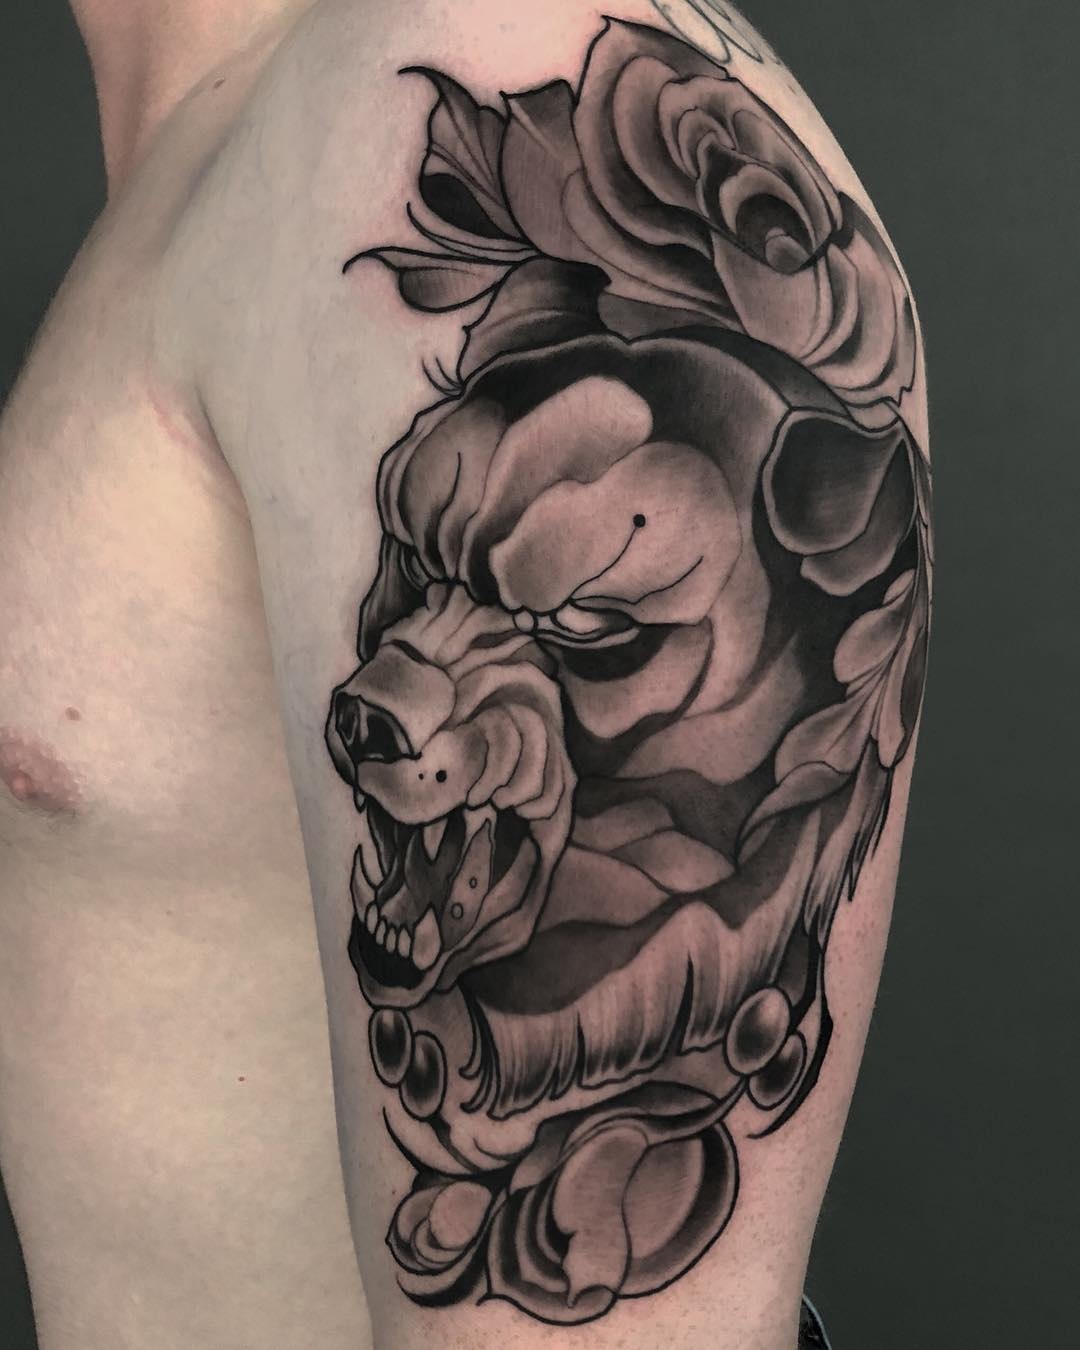 blake byrnes tattoo artist london 04